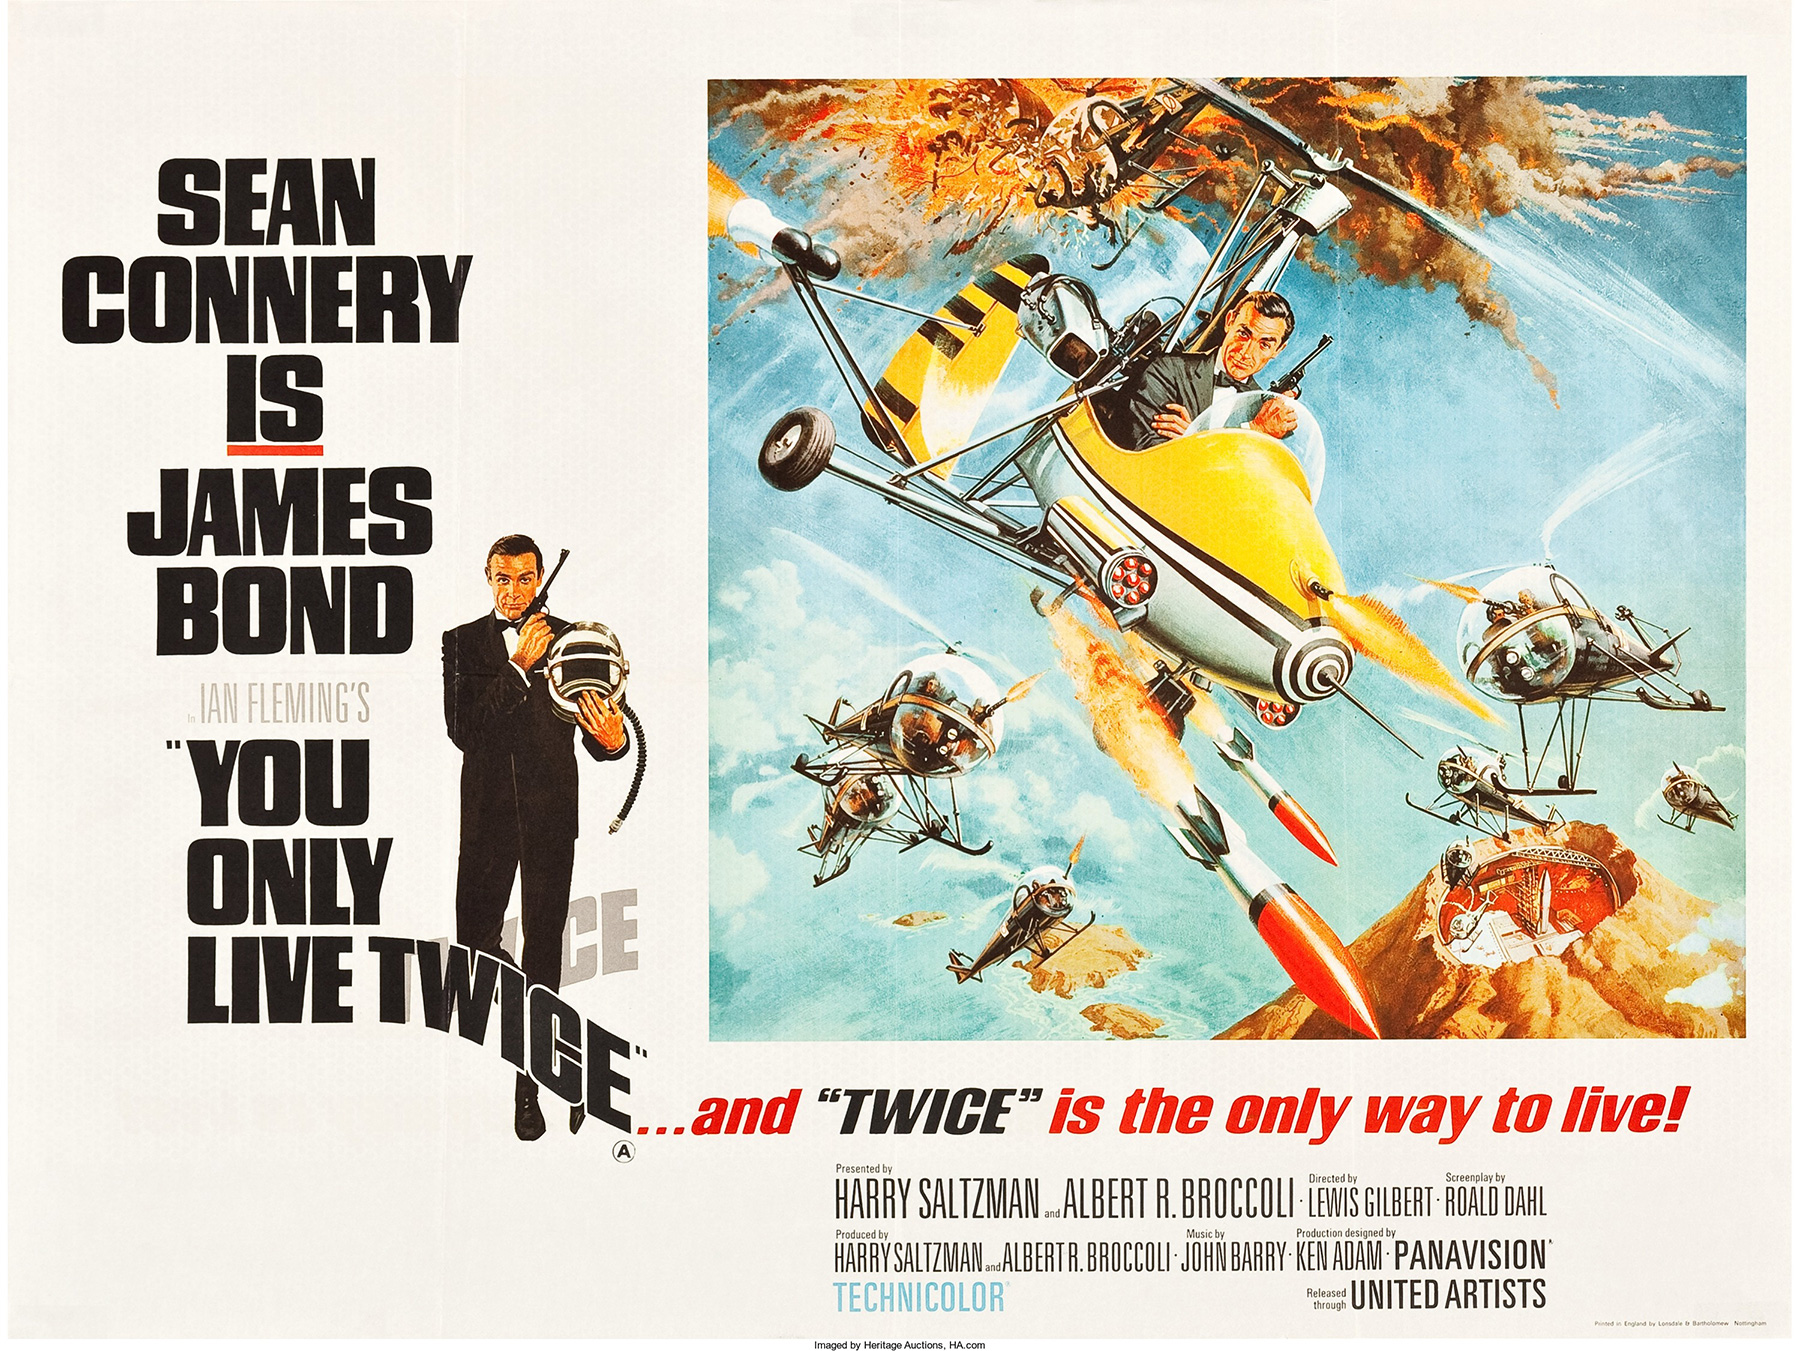 James Bond's 'You Only Live Twice' at 50